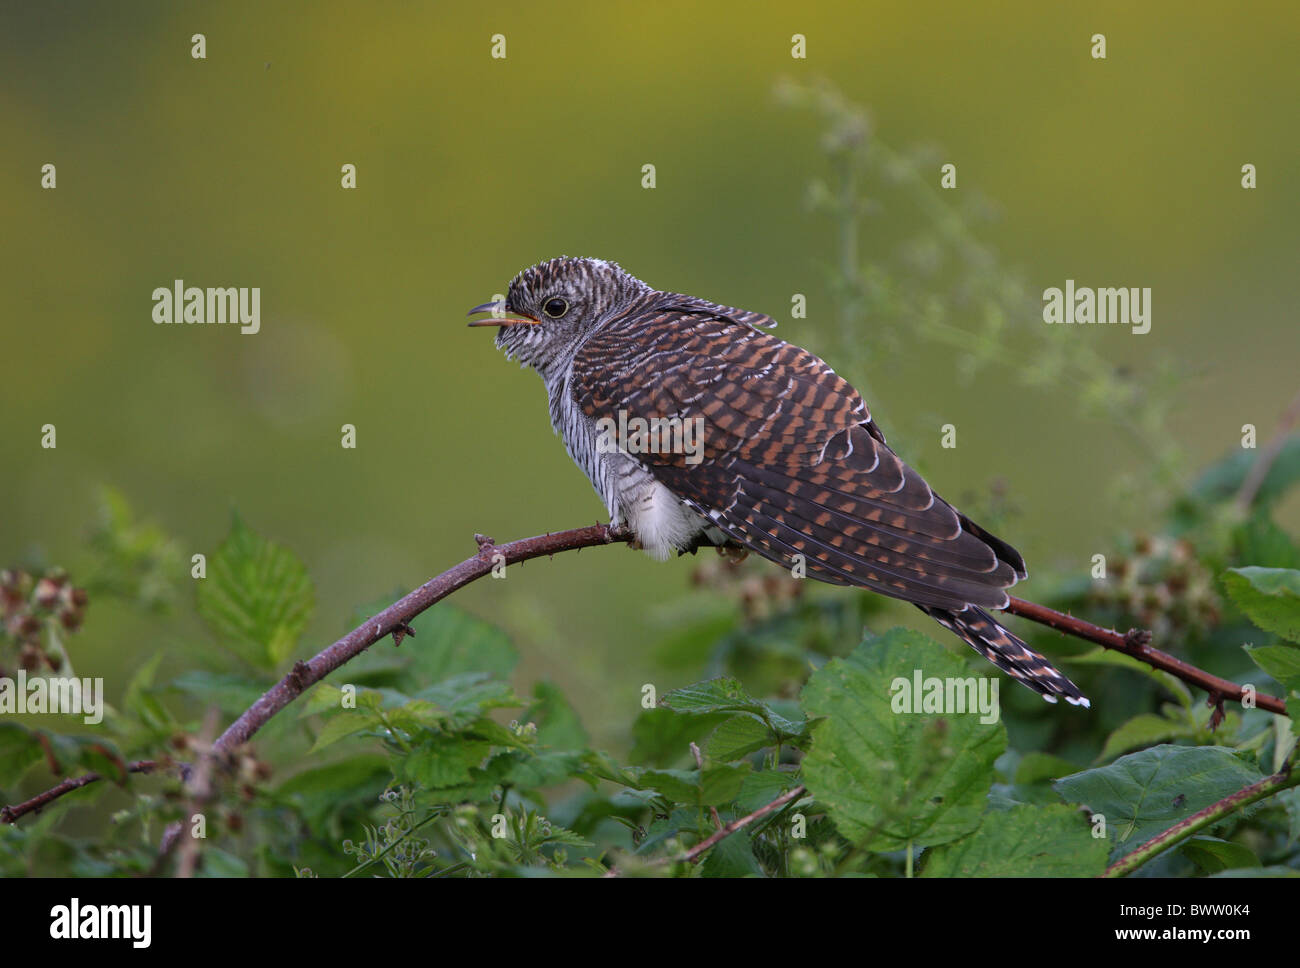 Common Cuckoo (Cuculus canorus) juvenile, calling, perched on bramble, Norfolk, England, july - Stock Image